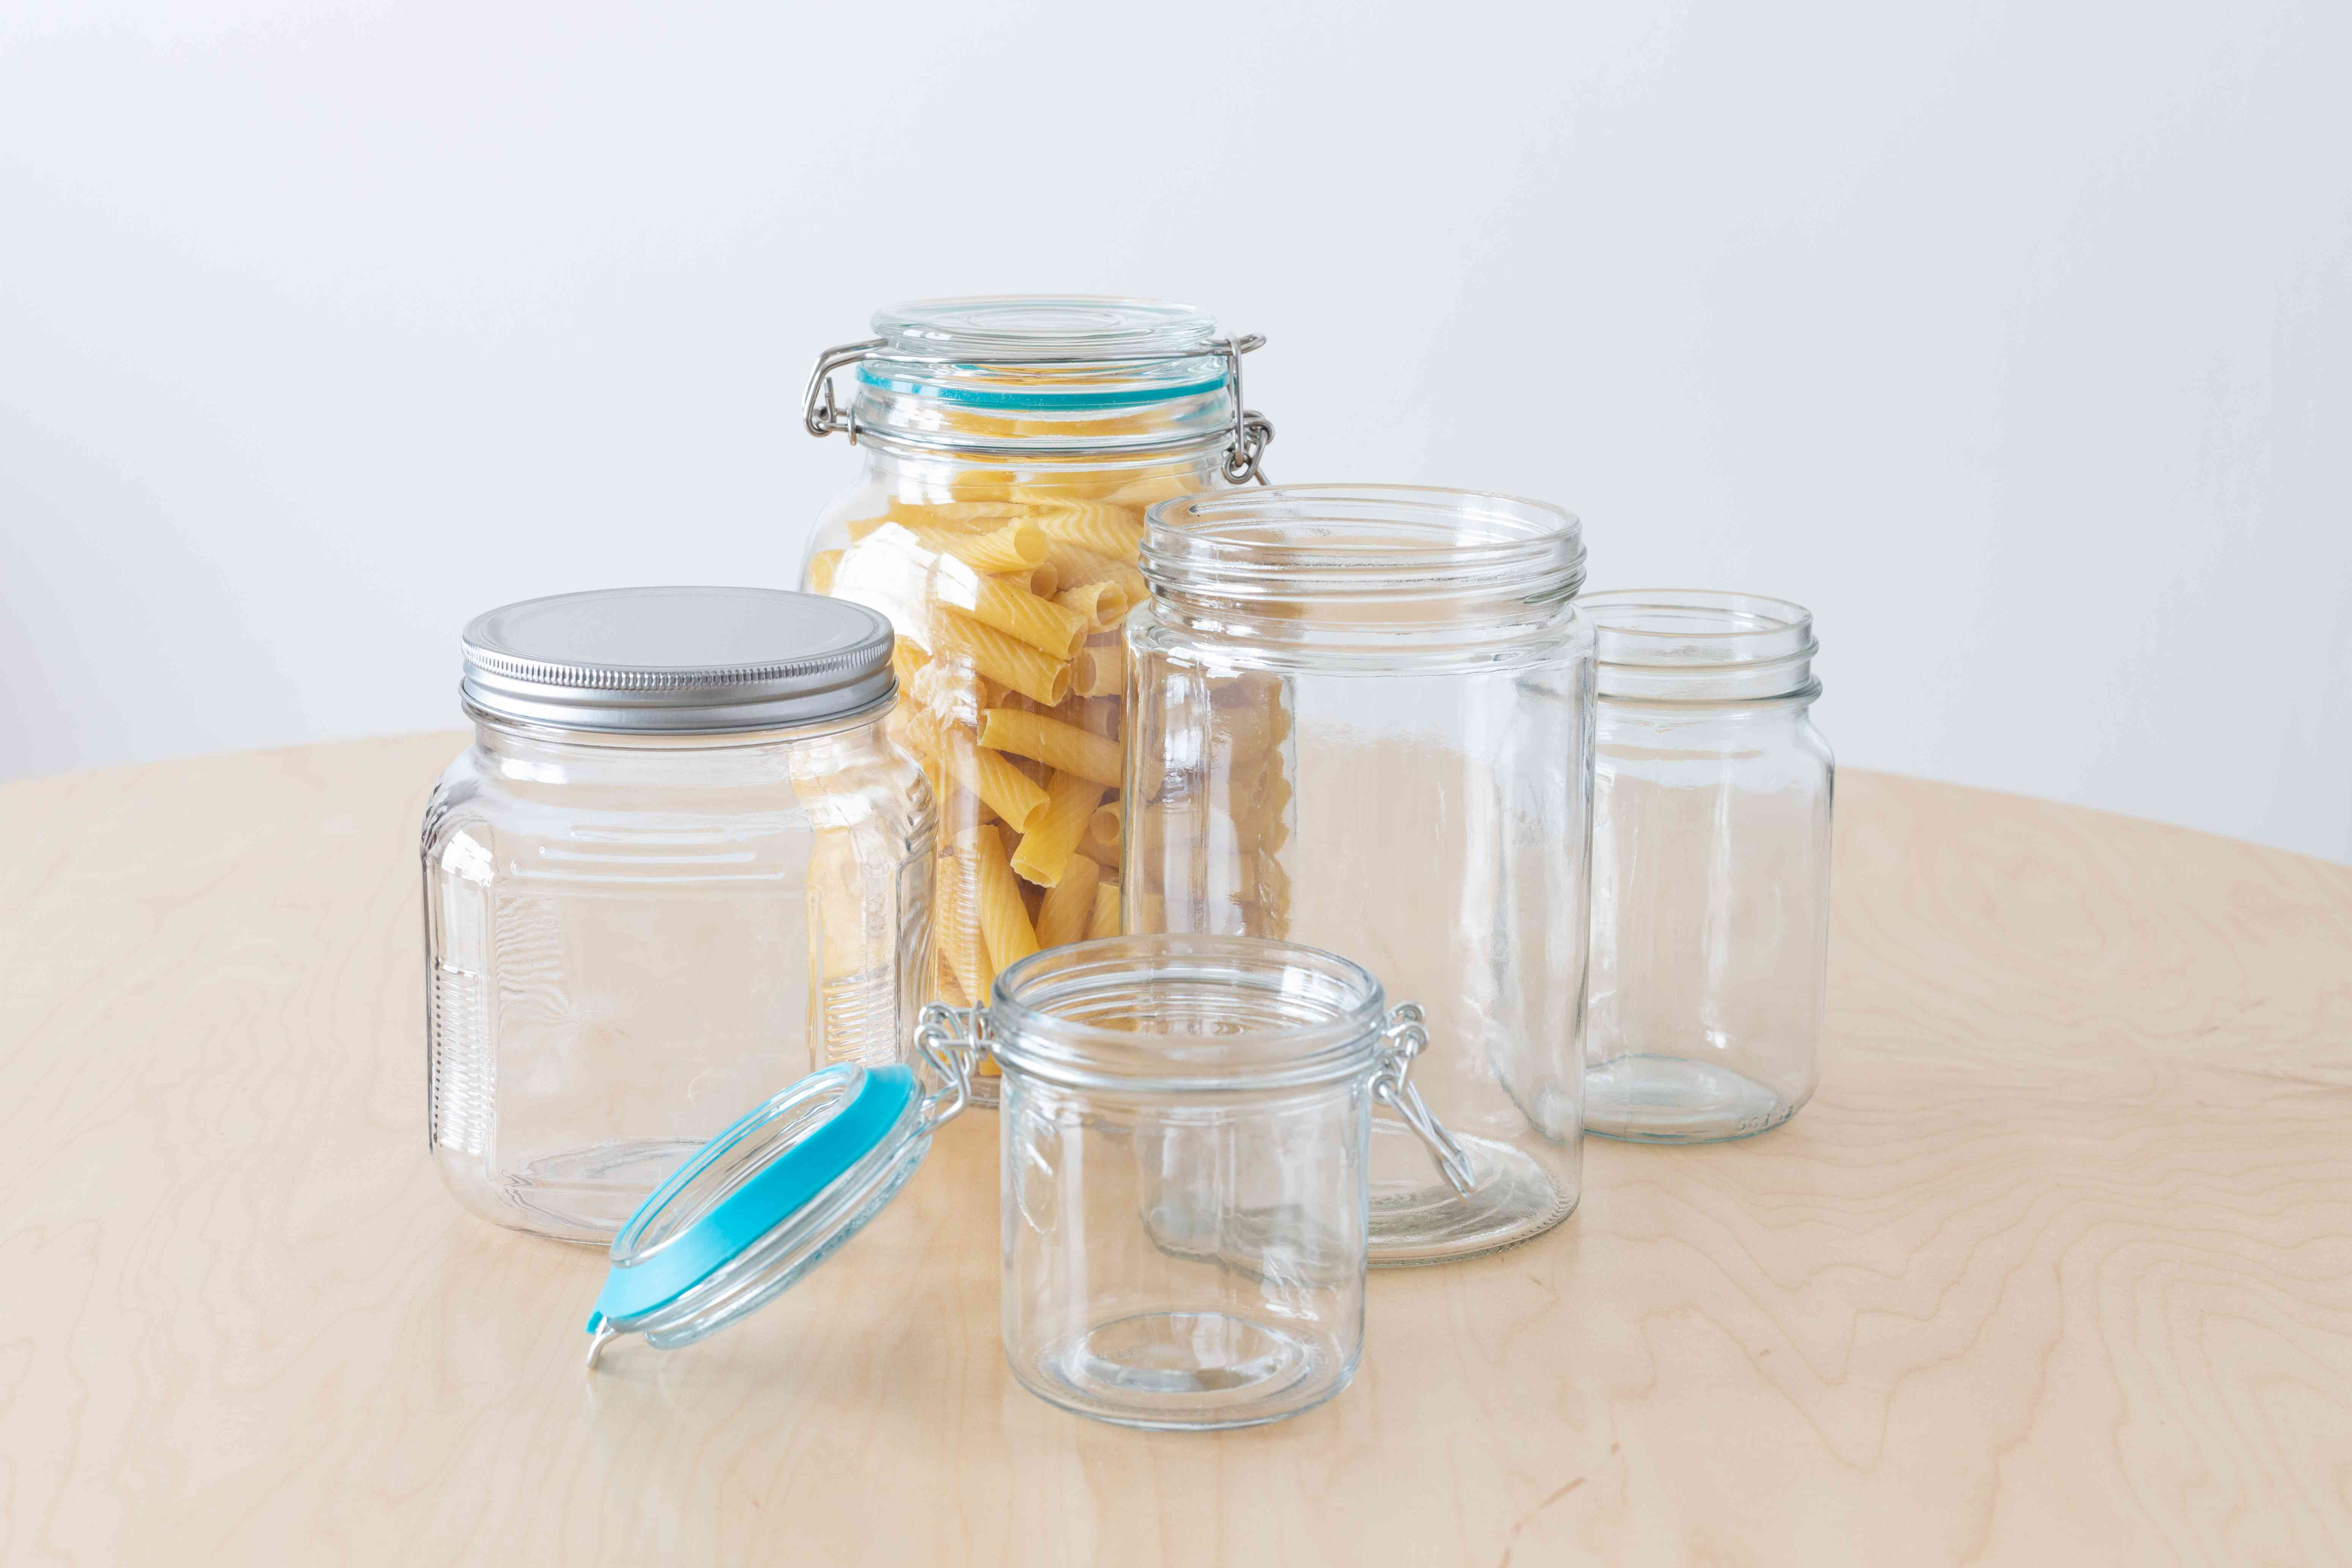 jars and canisters